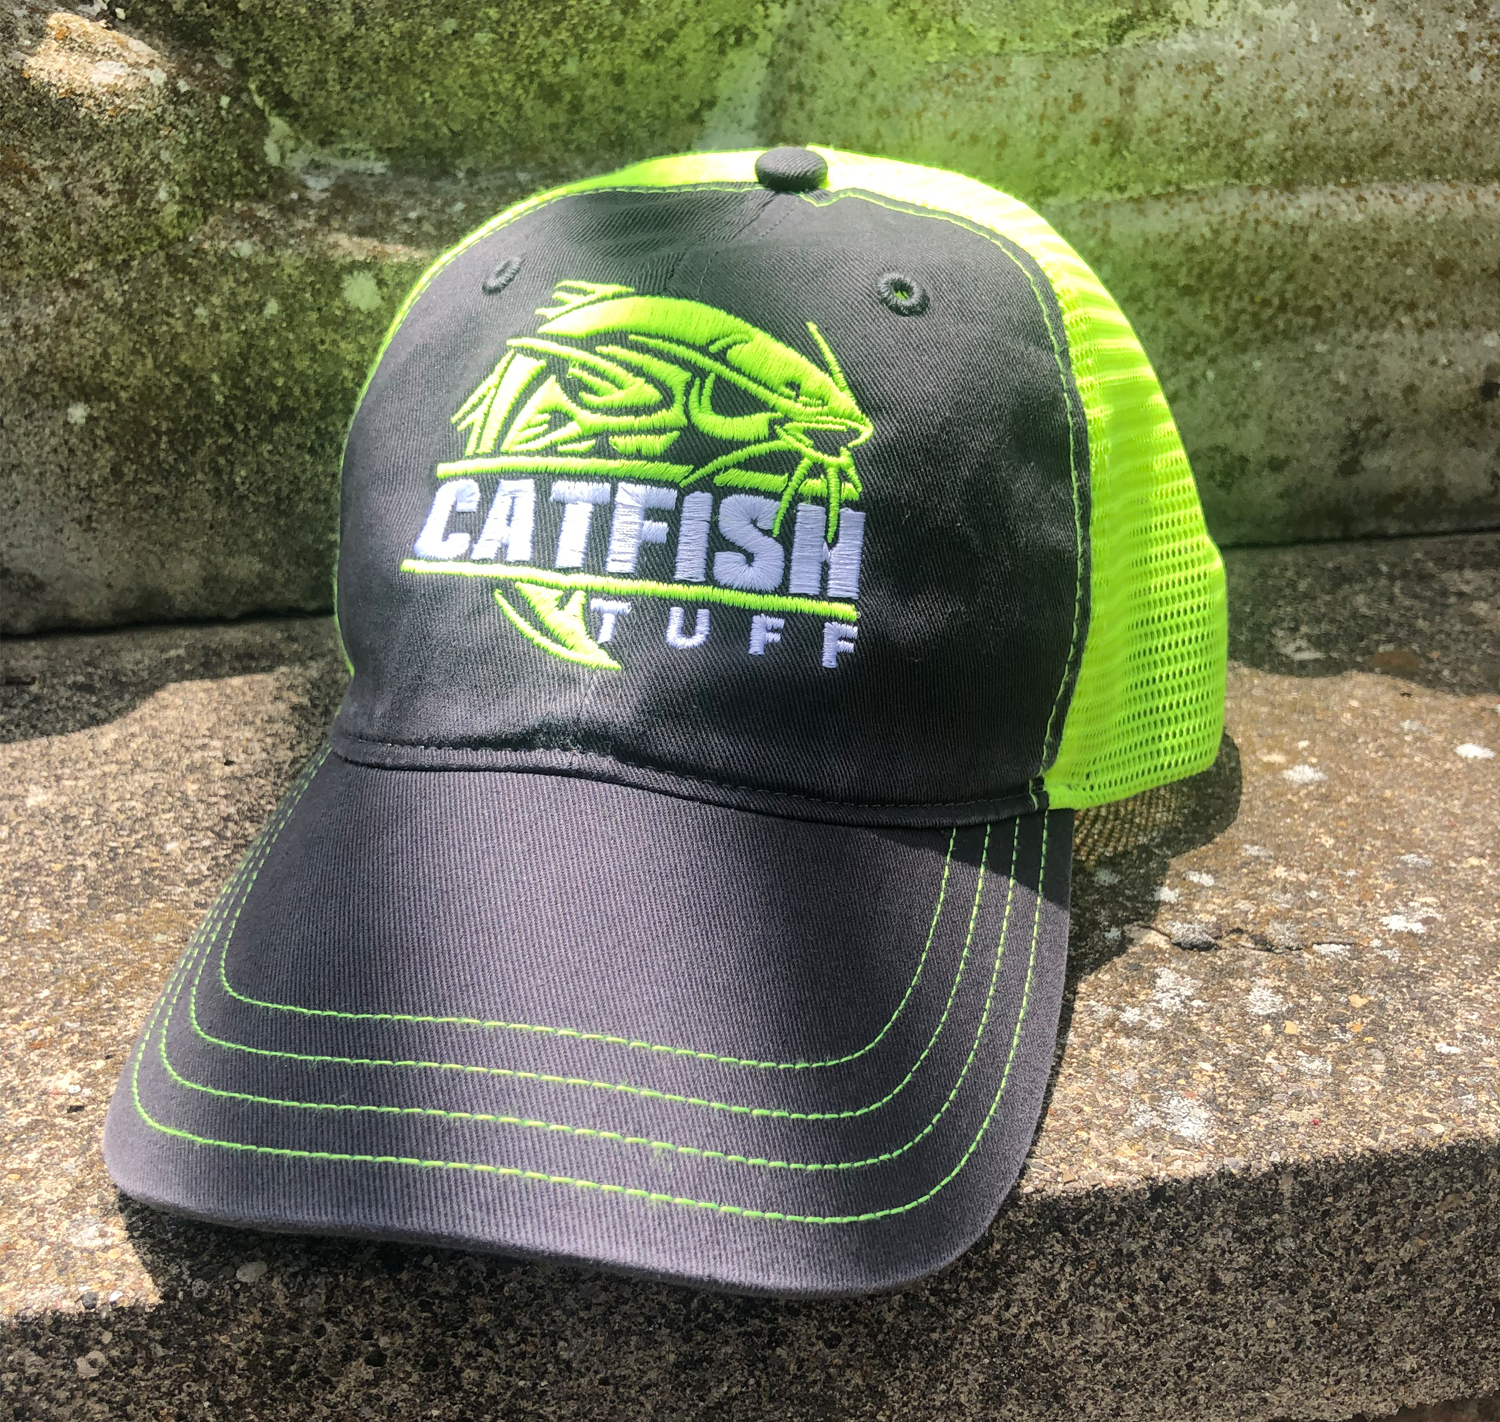 CatFish Tuff - Neon - Charcoal/Neon Yellow Richardson Garment Washed Trucker Cap